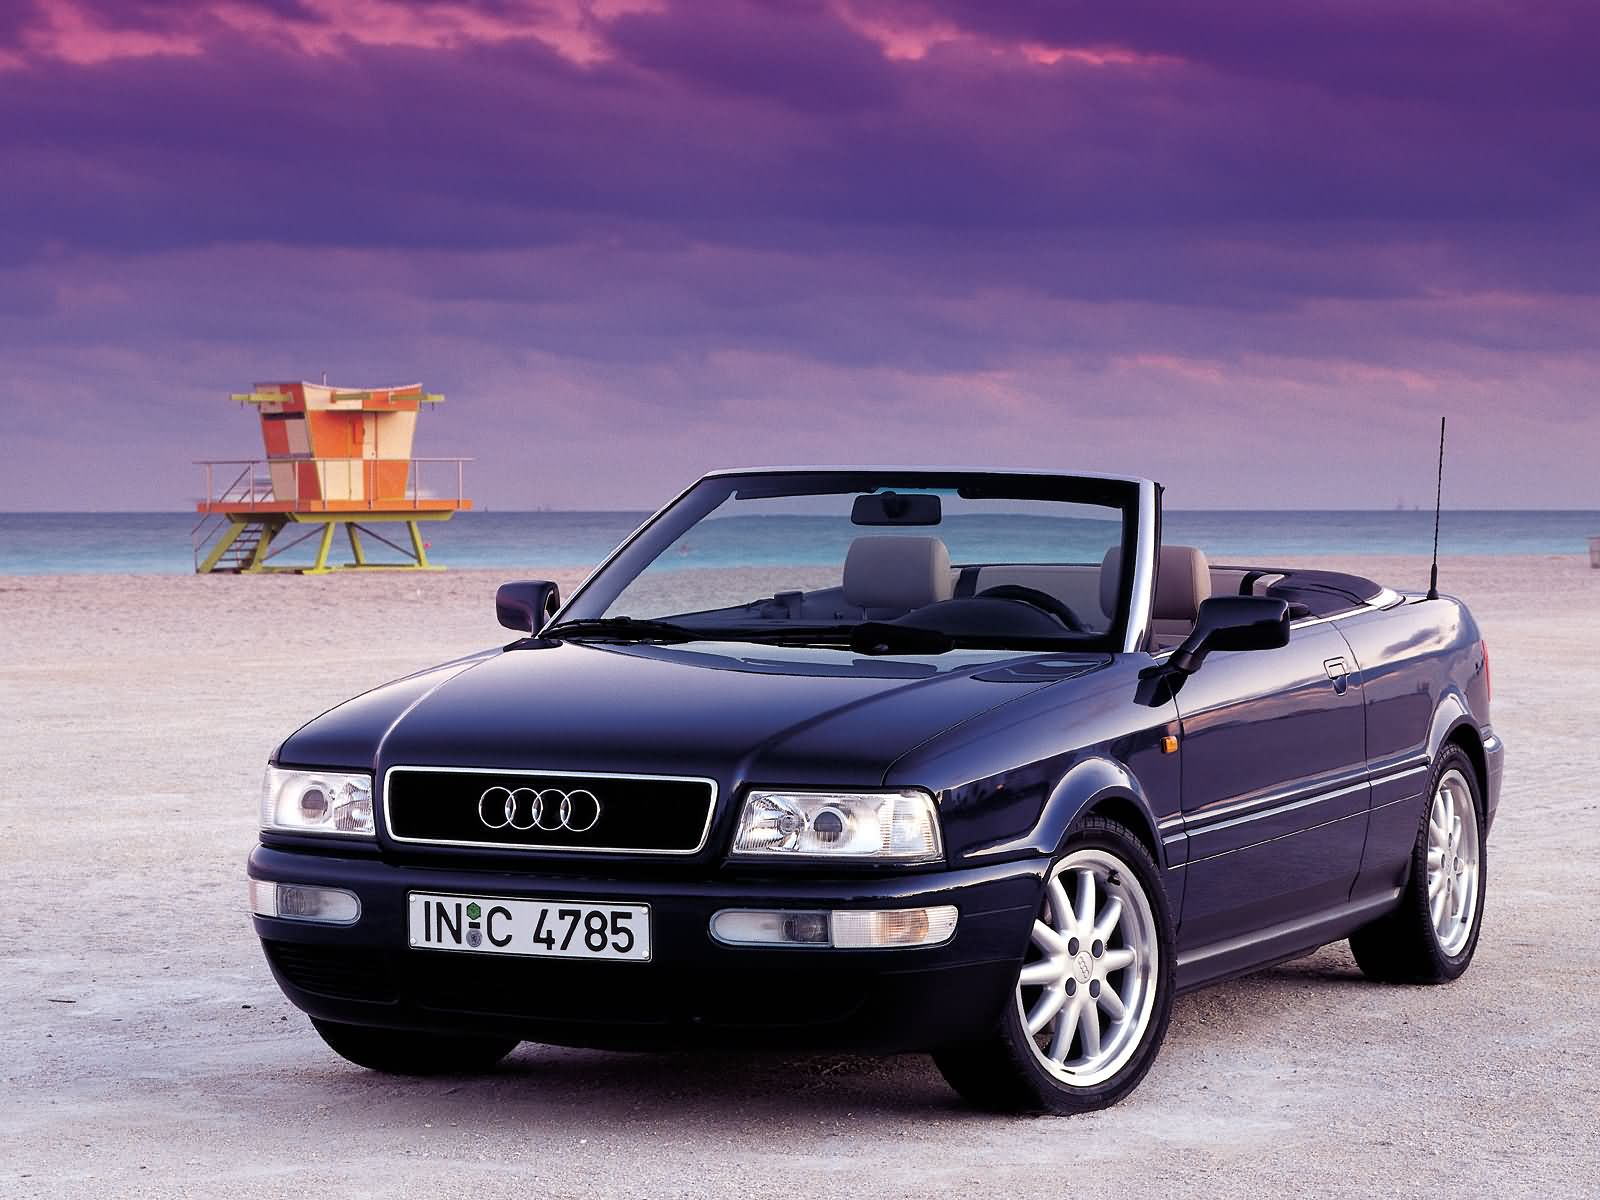 audi a4 cabriolet picture 16930 audi photo gallery. Black Bedroom Furniture Sets. Home Design Ideas